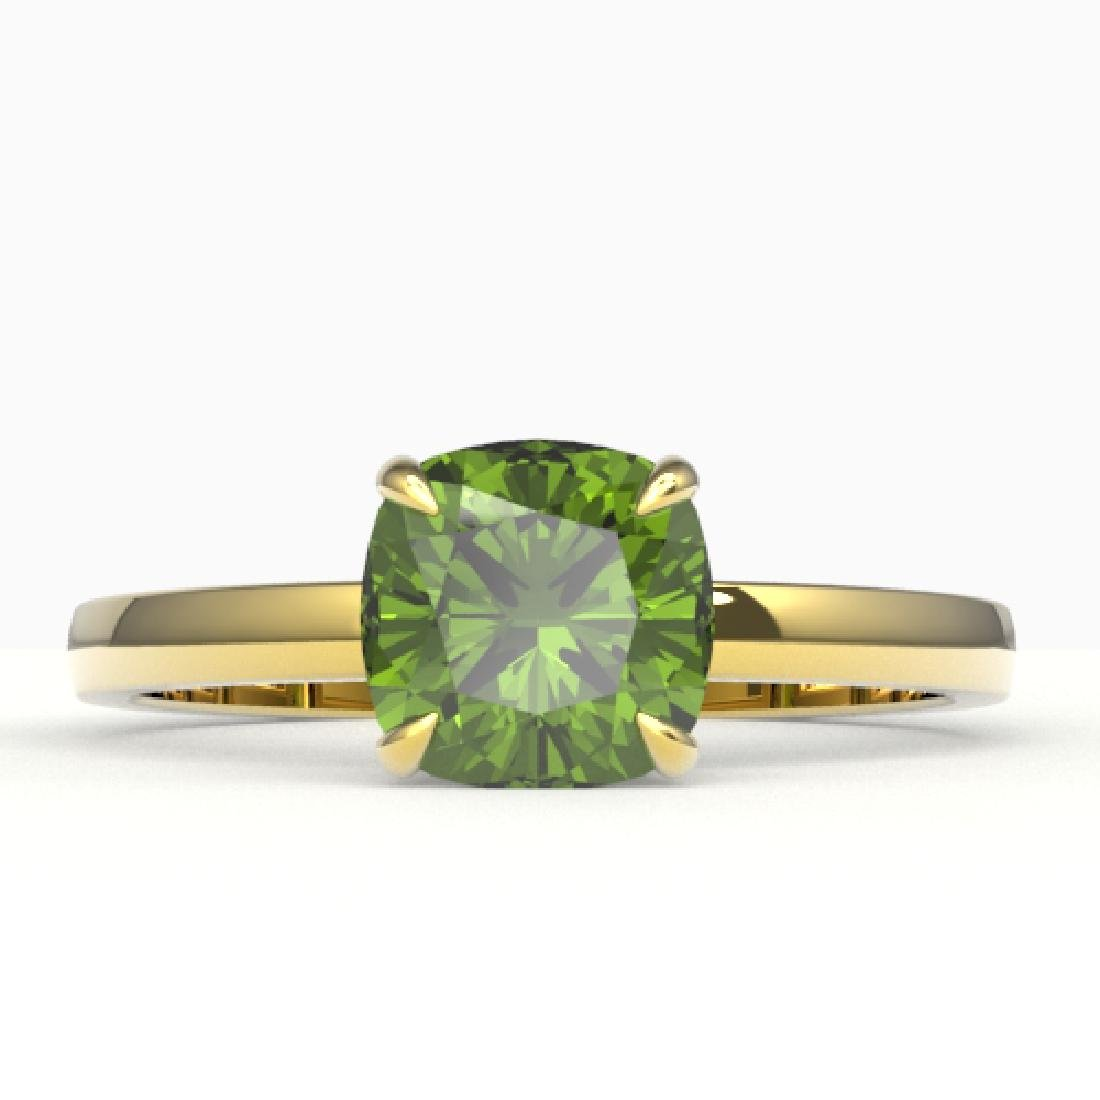 2 CTW Cushion Cut Green Tourmaline Solitaire Engagement